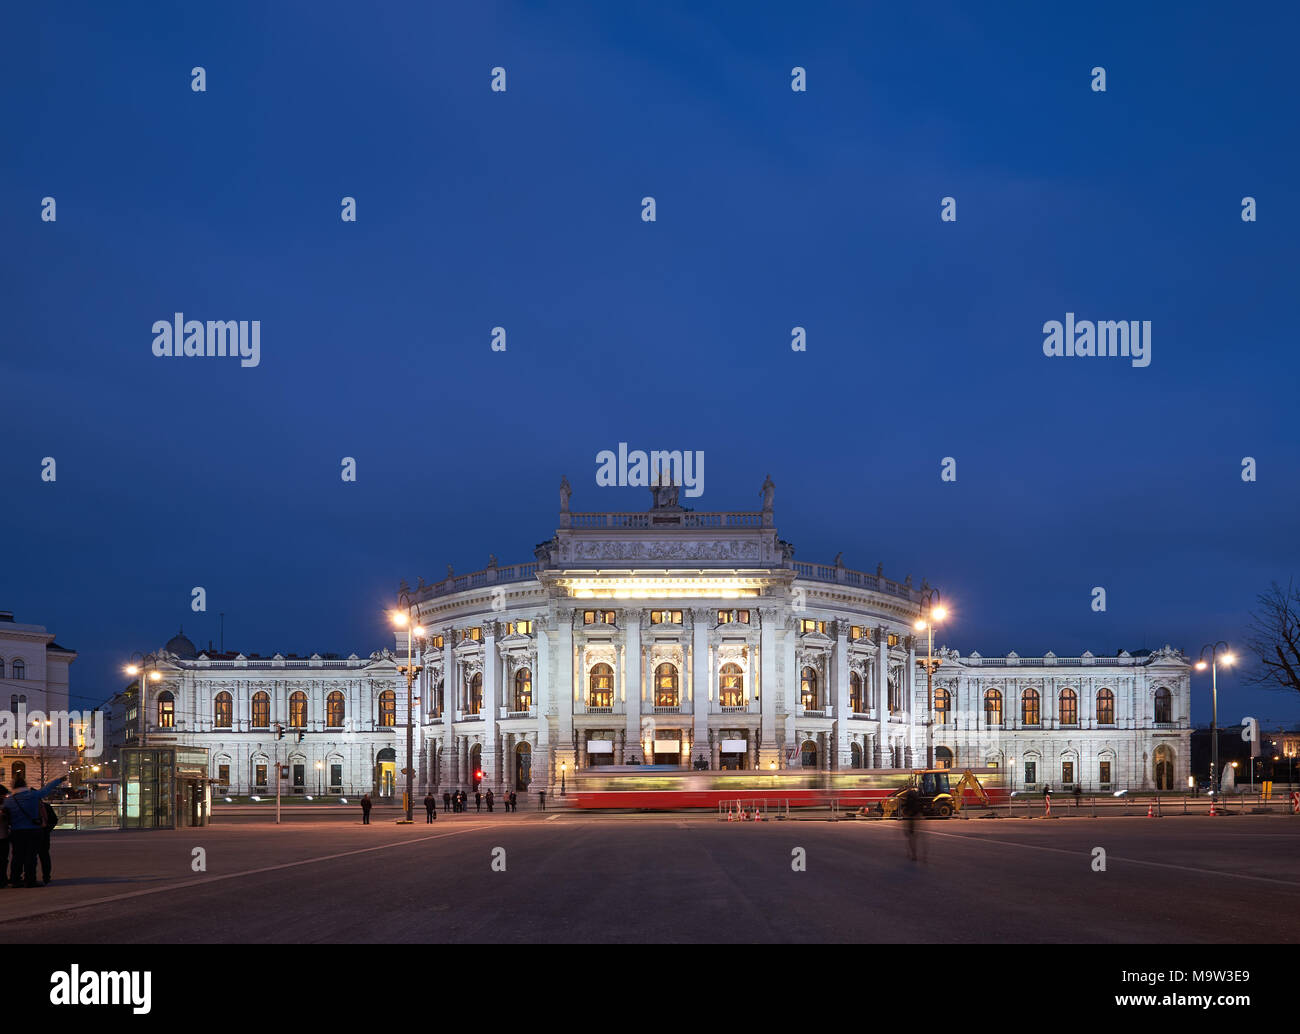 Panoramic image of Burgtheater (Imperial Court Theatre) in Vienna, Austria, at night - Stock Image